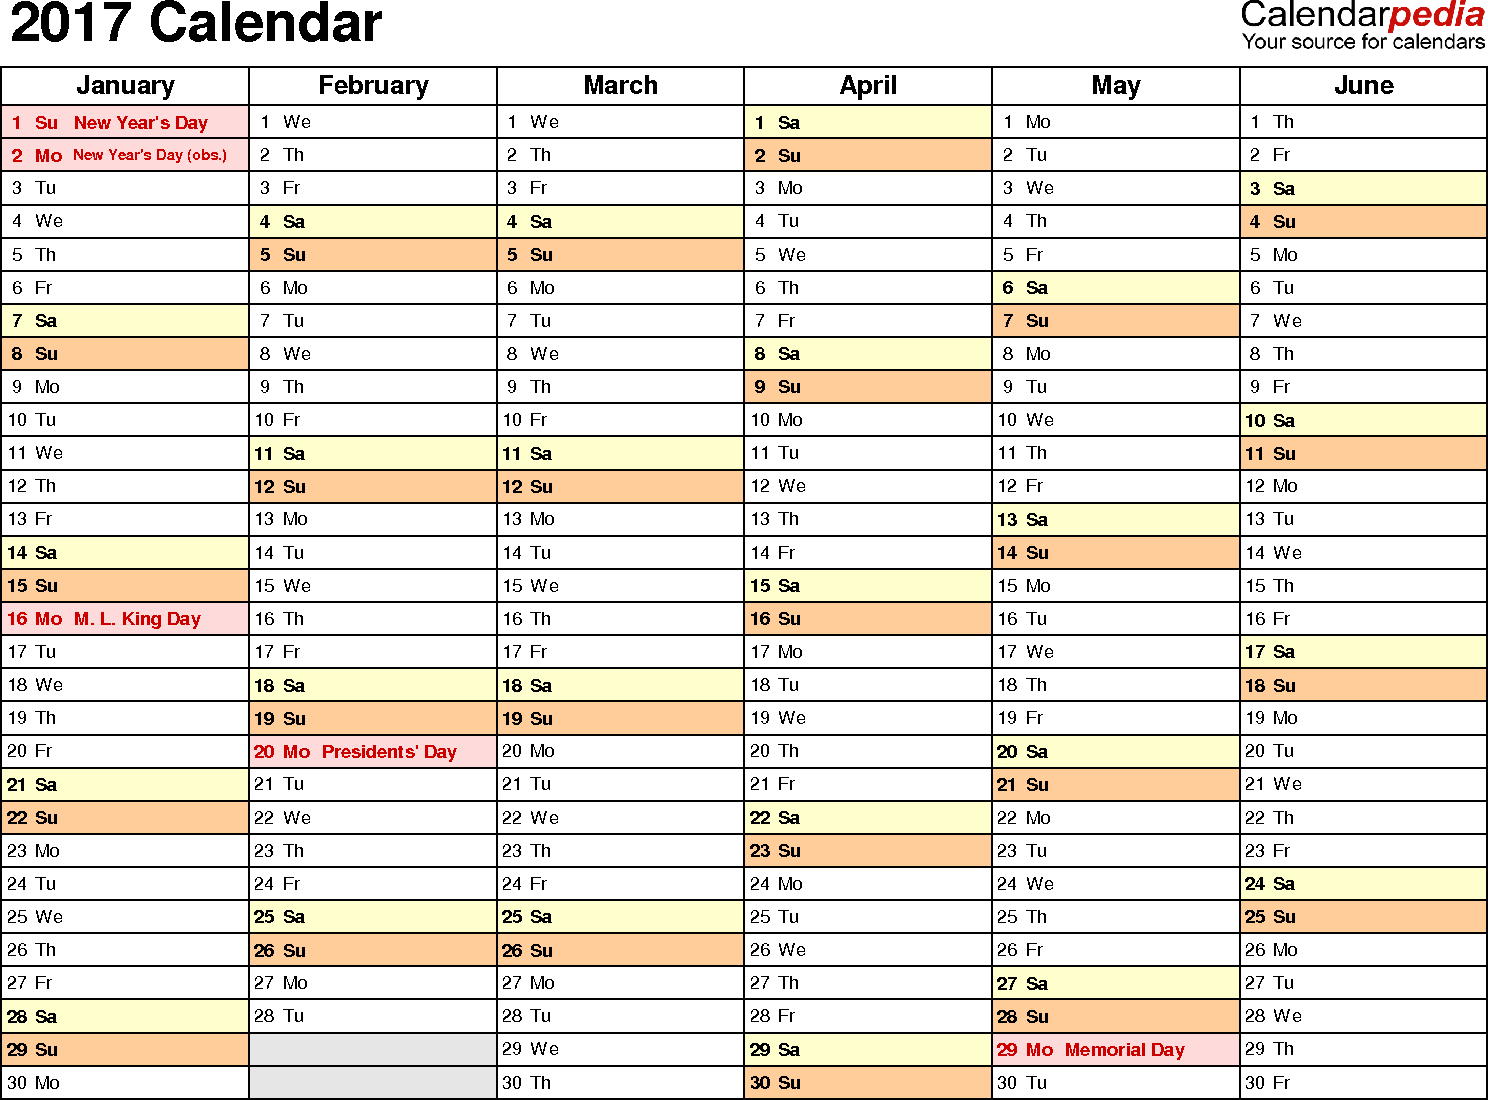 Ediblewildsus  Winsome  Calendar  Download  Free Printable Excel Templates Xls With Excellent Template   Calendar For Excel Months Horizontally  Pages Landscape Orientation With Beauteous Paste Transpose Excel Also Turn Excel Into Database In Addition Dynamic Excel Charts And Freeze Column And Row In Excel As Well As Resource Utilization Dashboard Excel Additionally Pretty Excel Charts From Calendarpediacom With Ediblewildsus  Excellent  Calendar  Download  Free Printable Excel Templates Xls With Beauteous Template   Calendar For Excel Months Horizontally  Pages Landscape Orientation And Winsome Paste Transpose Excel Also Turn Excel Into Database In Addition Dynamic Excel Charts From Calendarpediacom